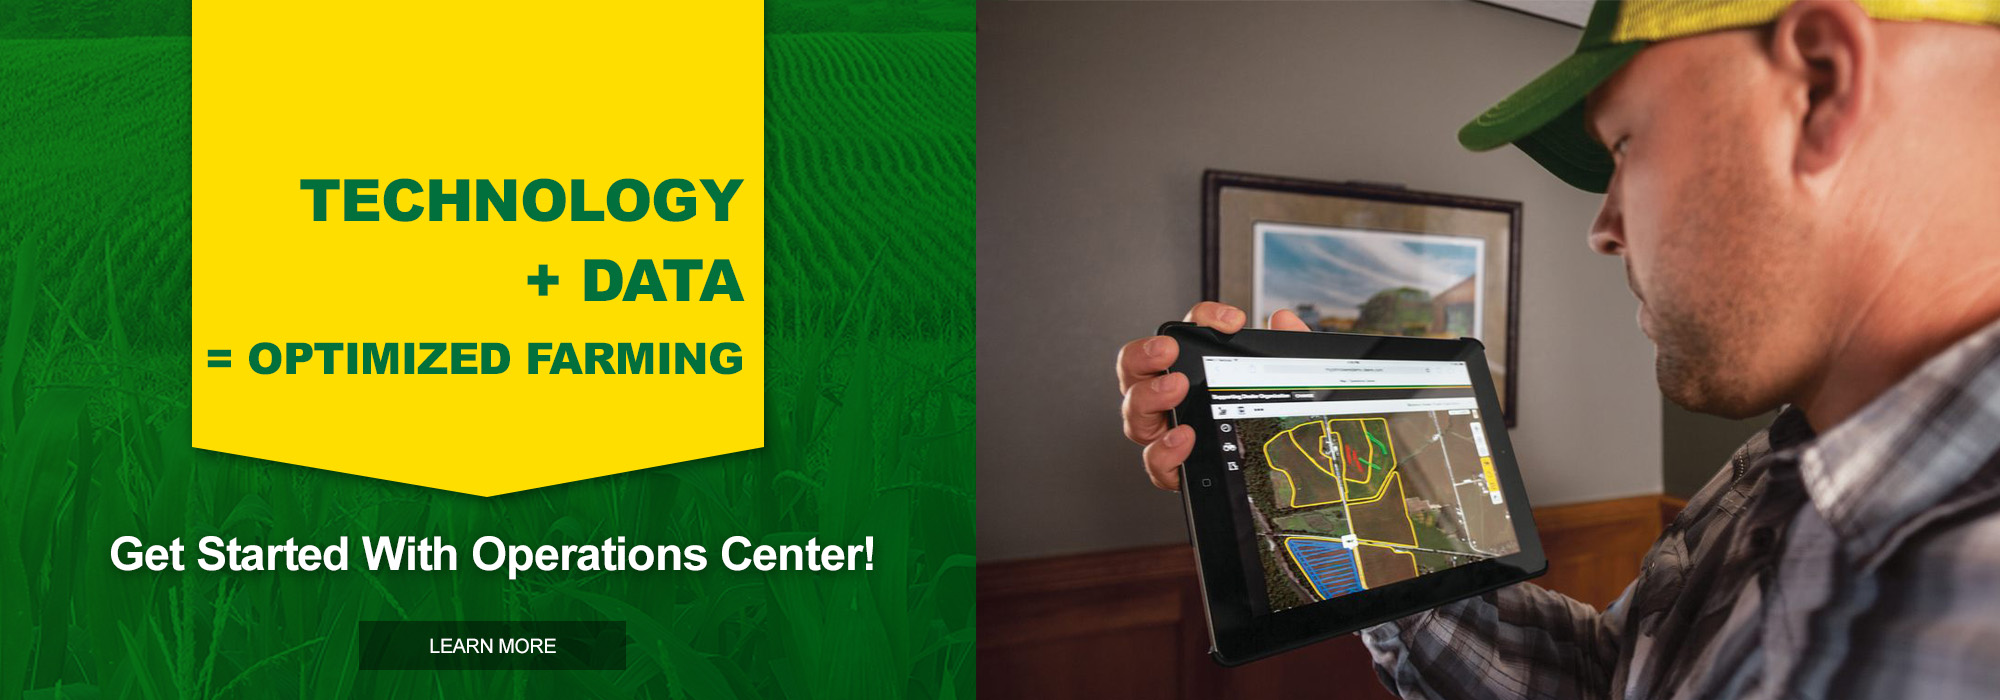 Get to know your AG data. Our Technology + Your Services = Optimized Farming. Get started with Operations Center!